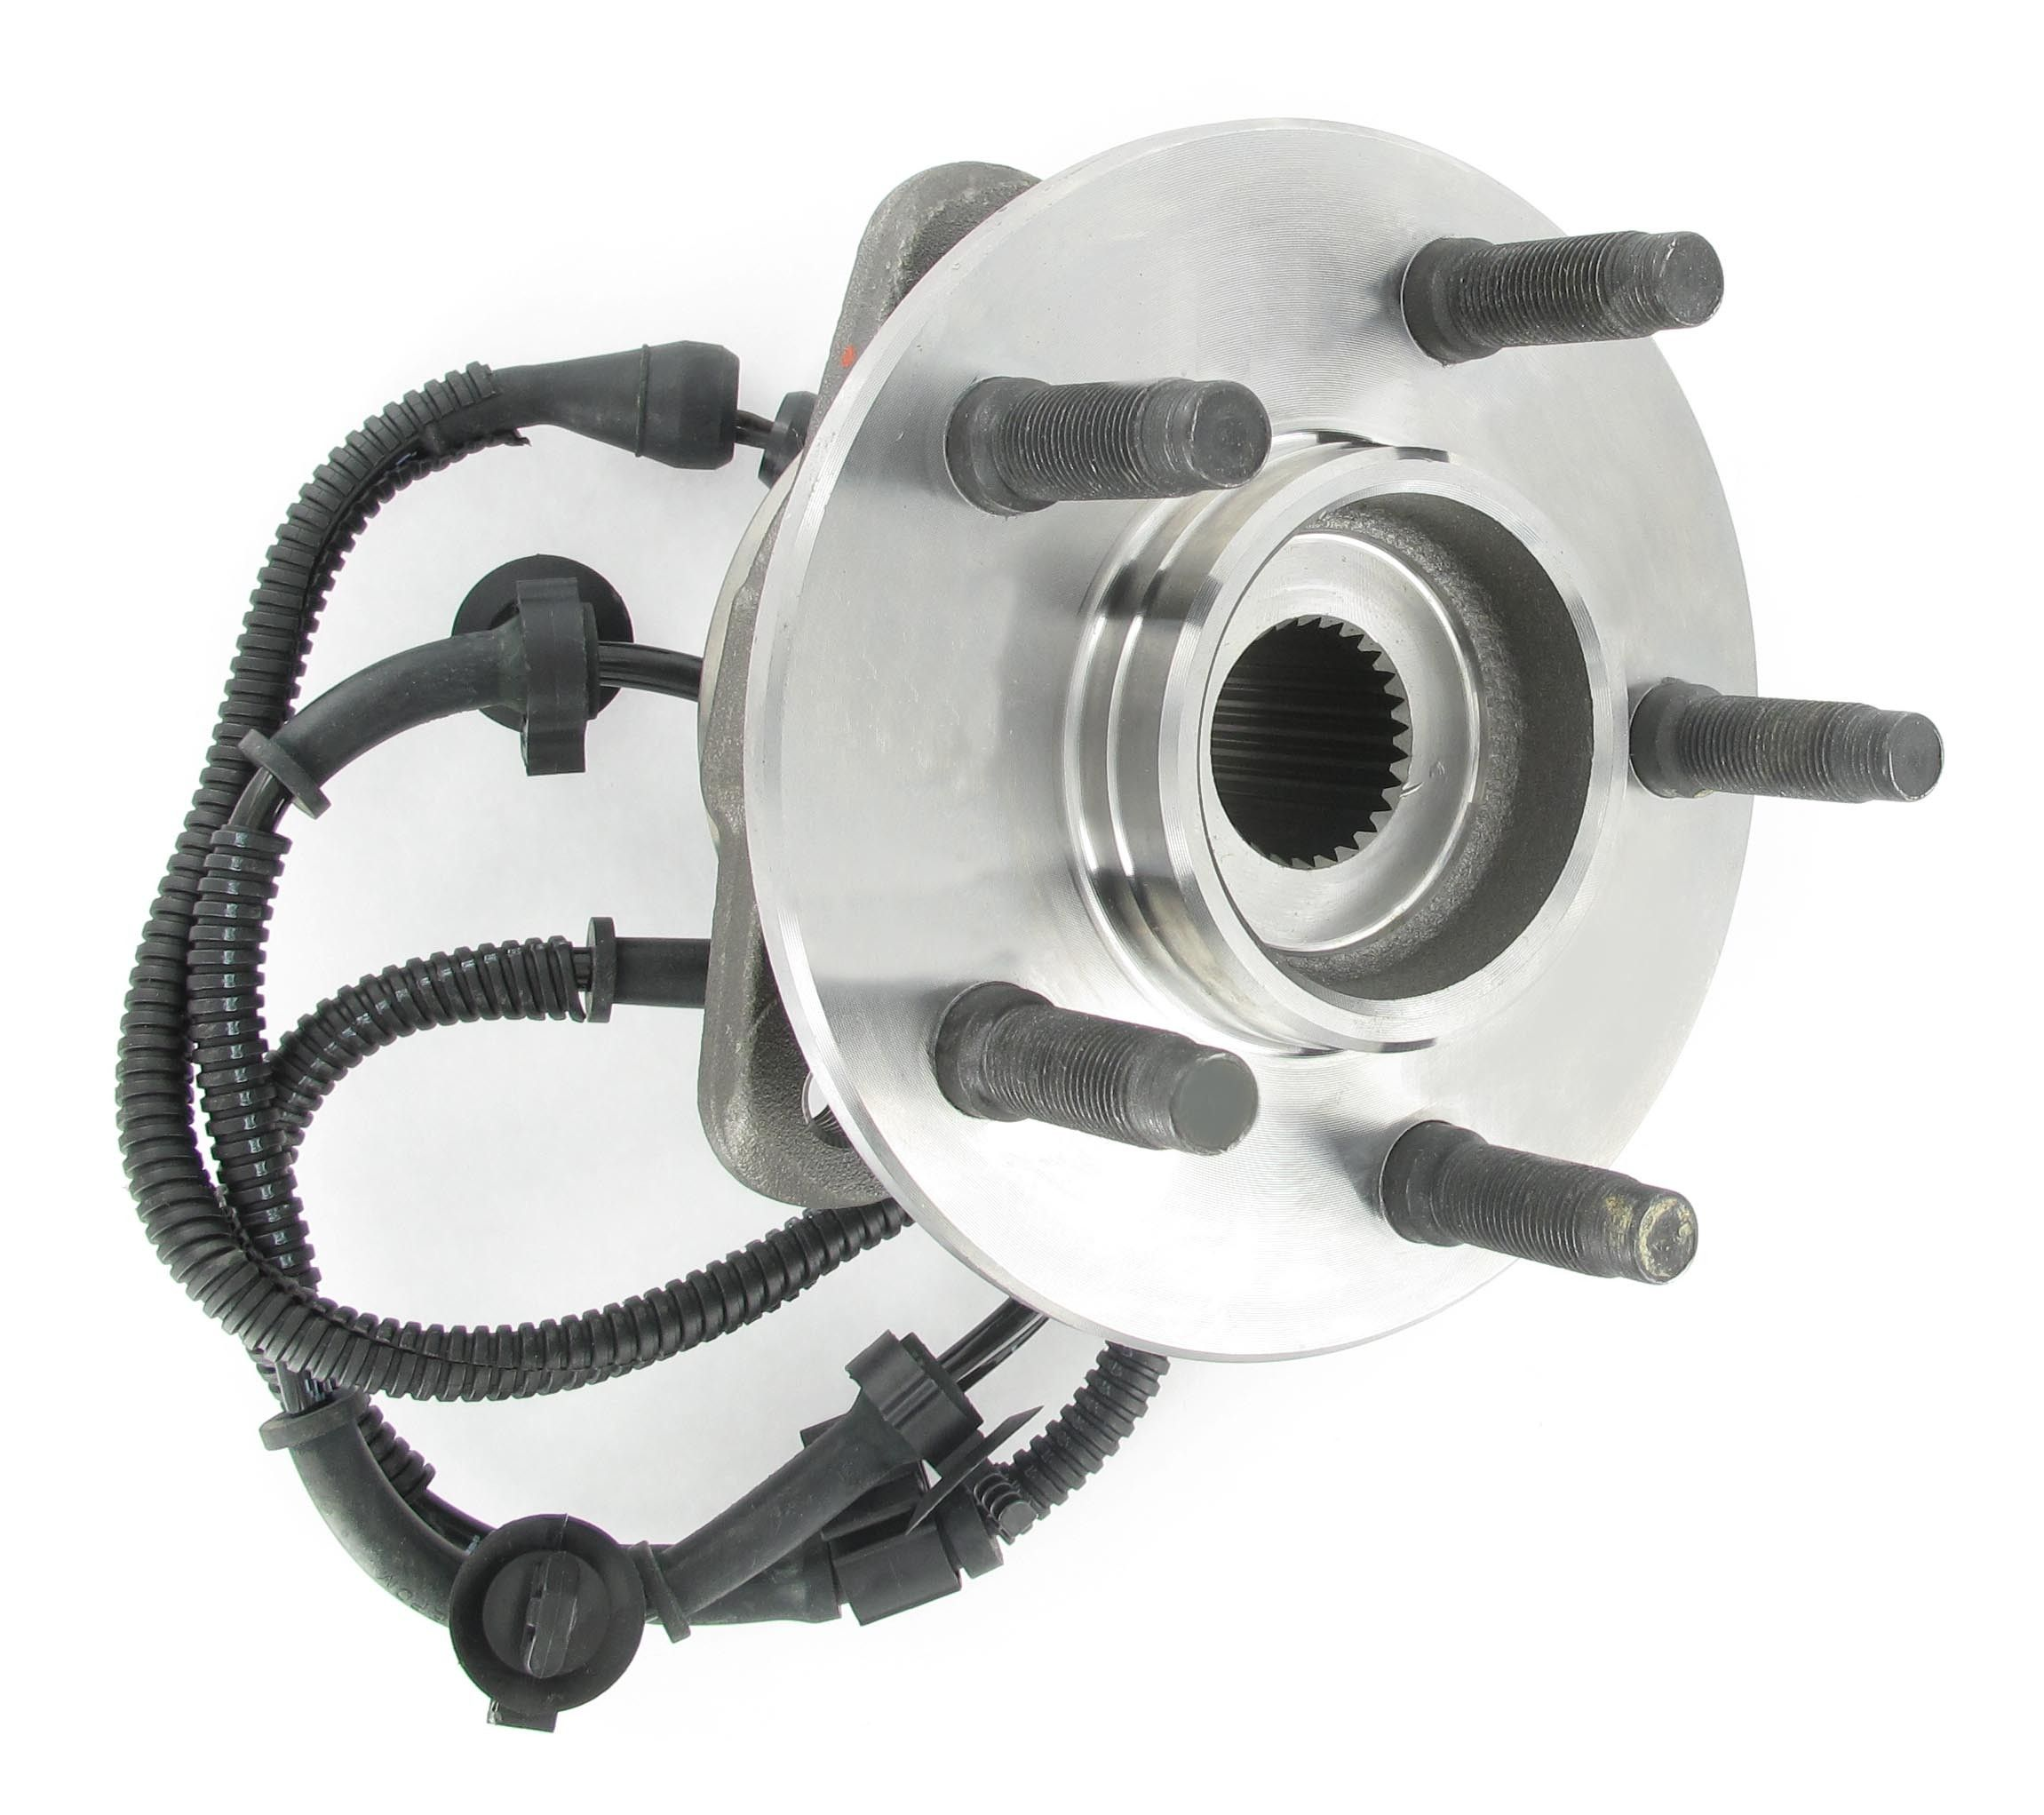 Ford Ranger Wheel Bearing and Hub Assembly Replacement (Beck